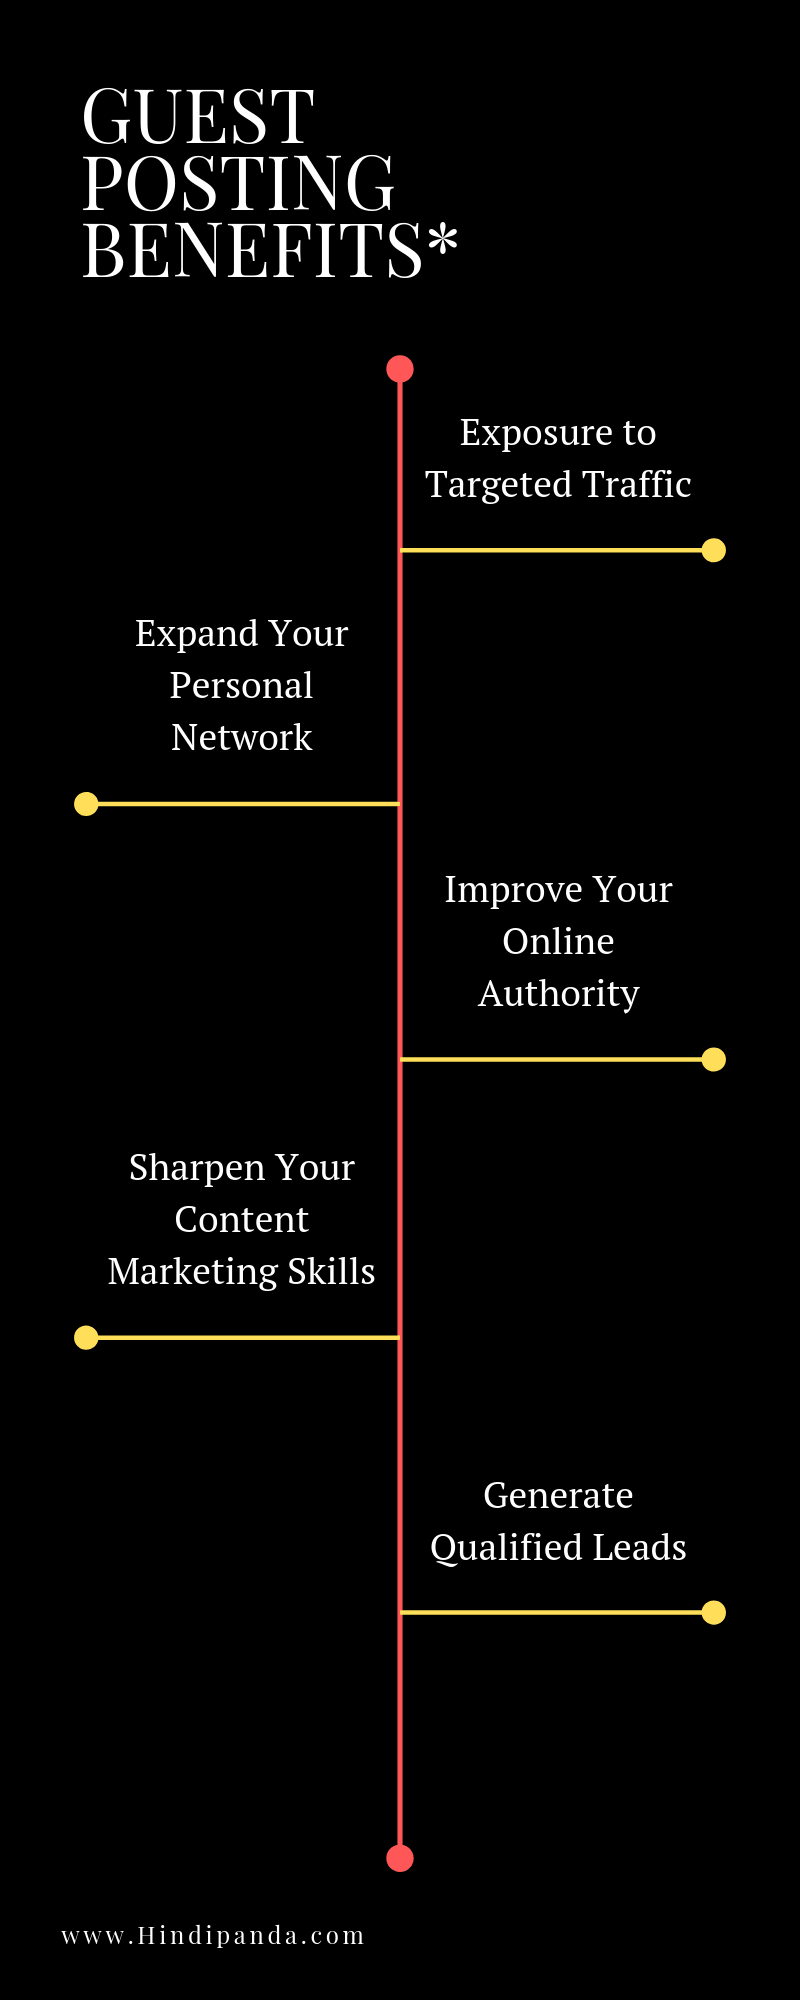 Submit a Guest Post Infographic